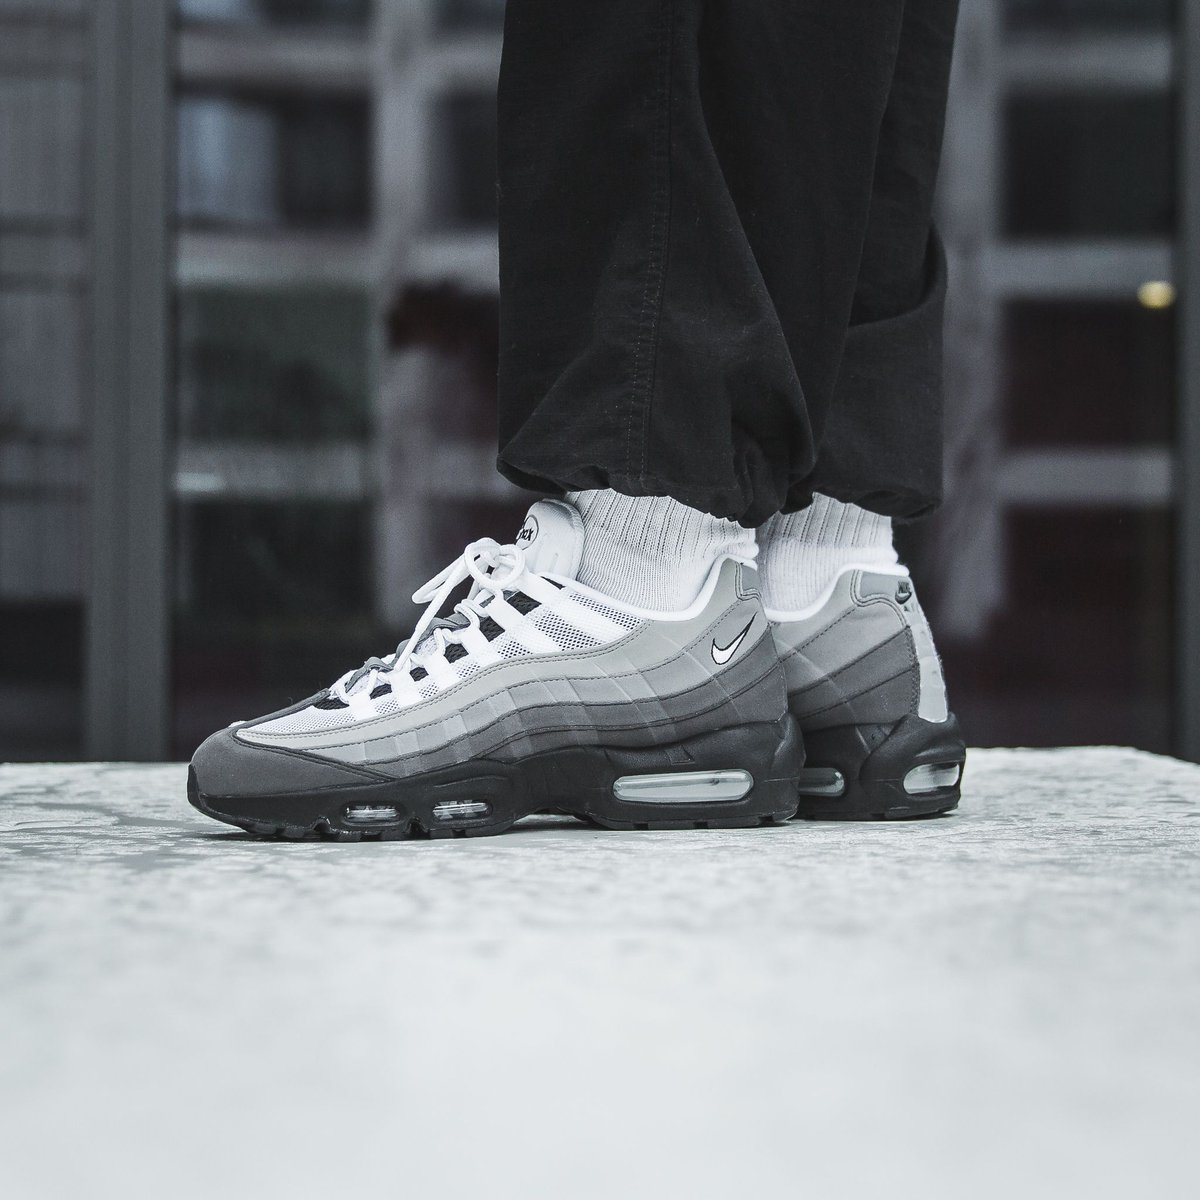 366151a1d sale 💥 Nike Air Max 95 Og - Black White-Granite-Dust to the webshop ...